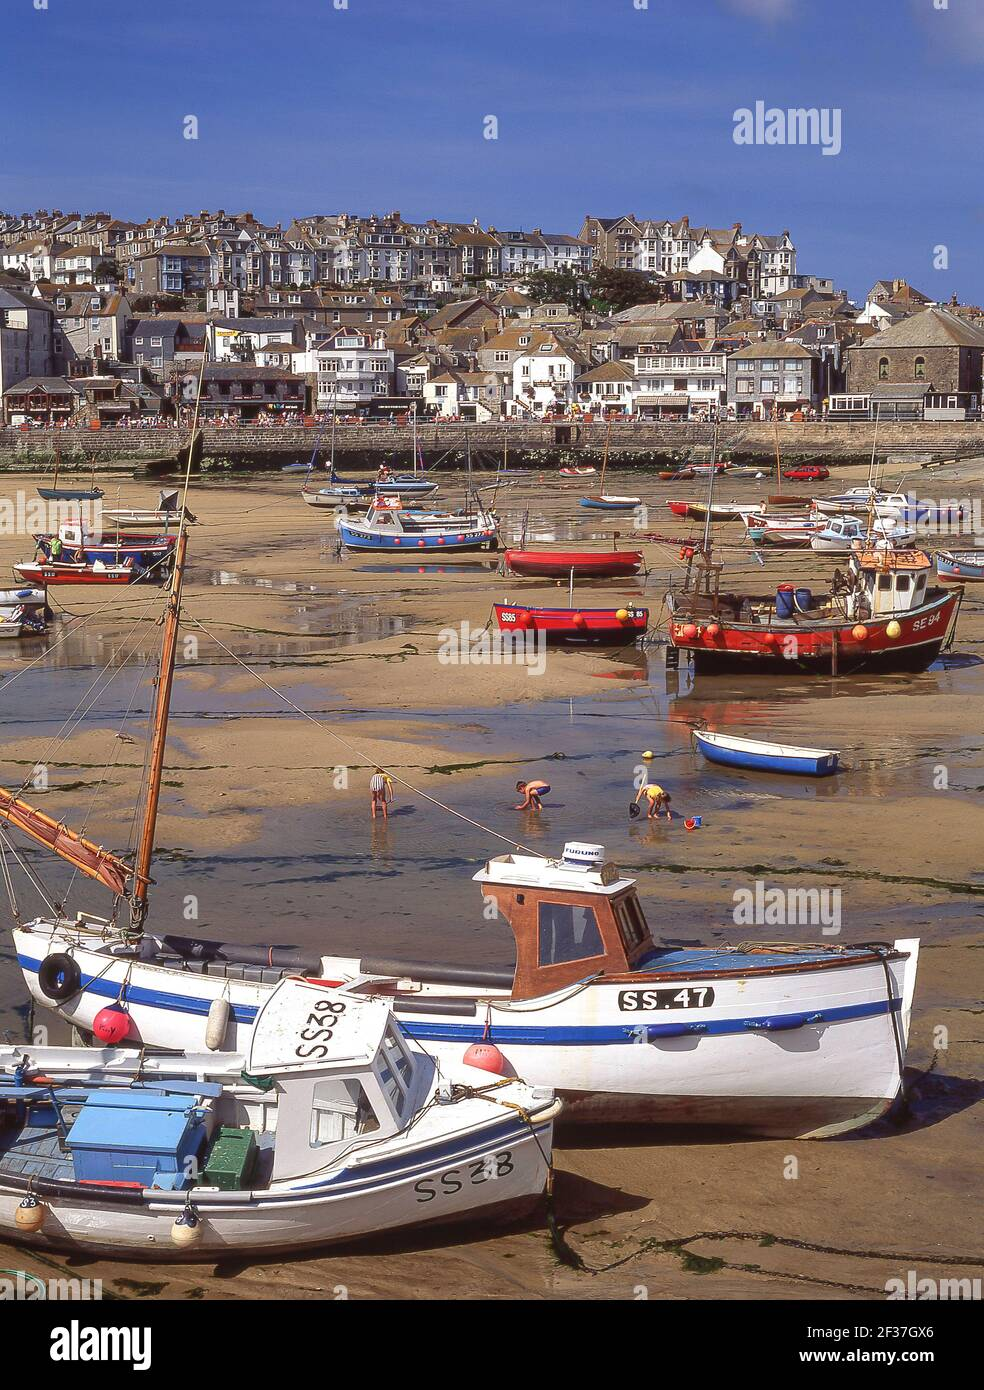 St Ives harbour at low tide, St Ives, Cornwall, England, United Kingdom Stock Photo